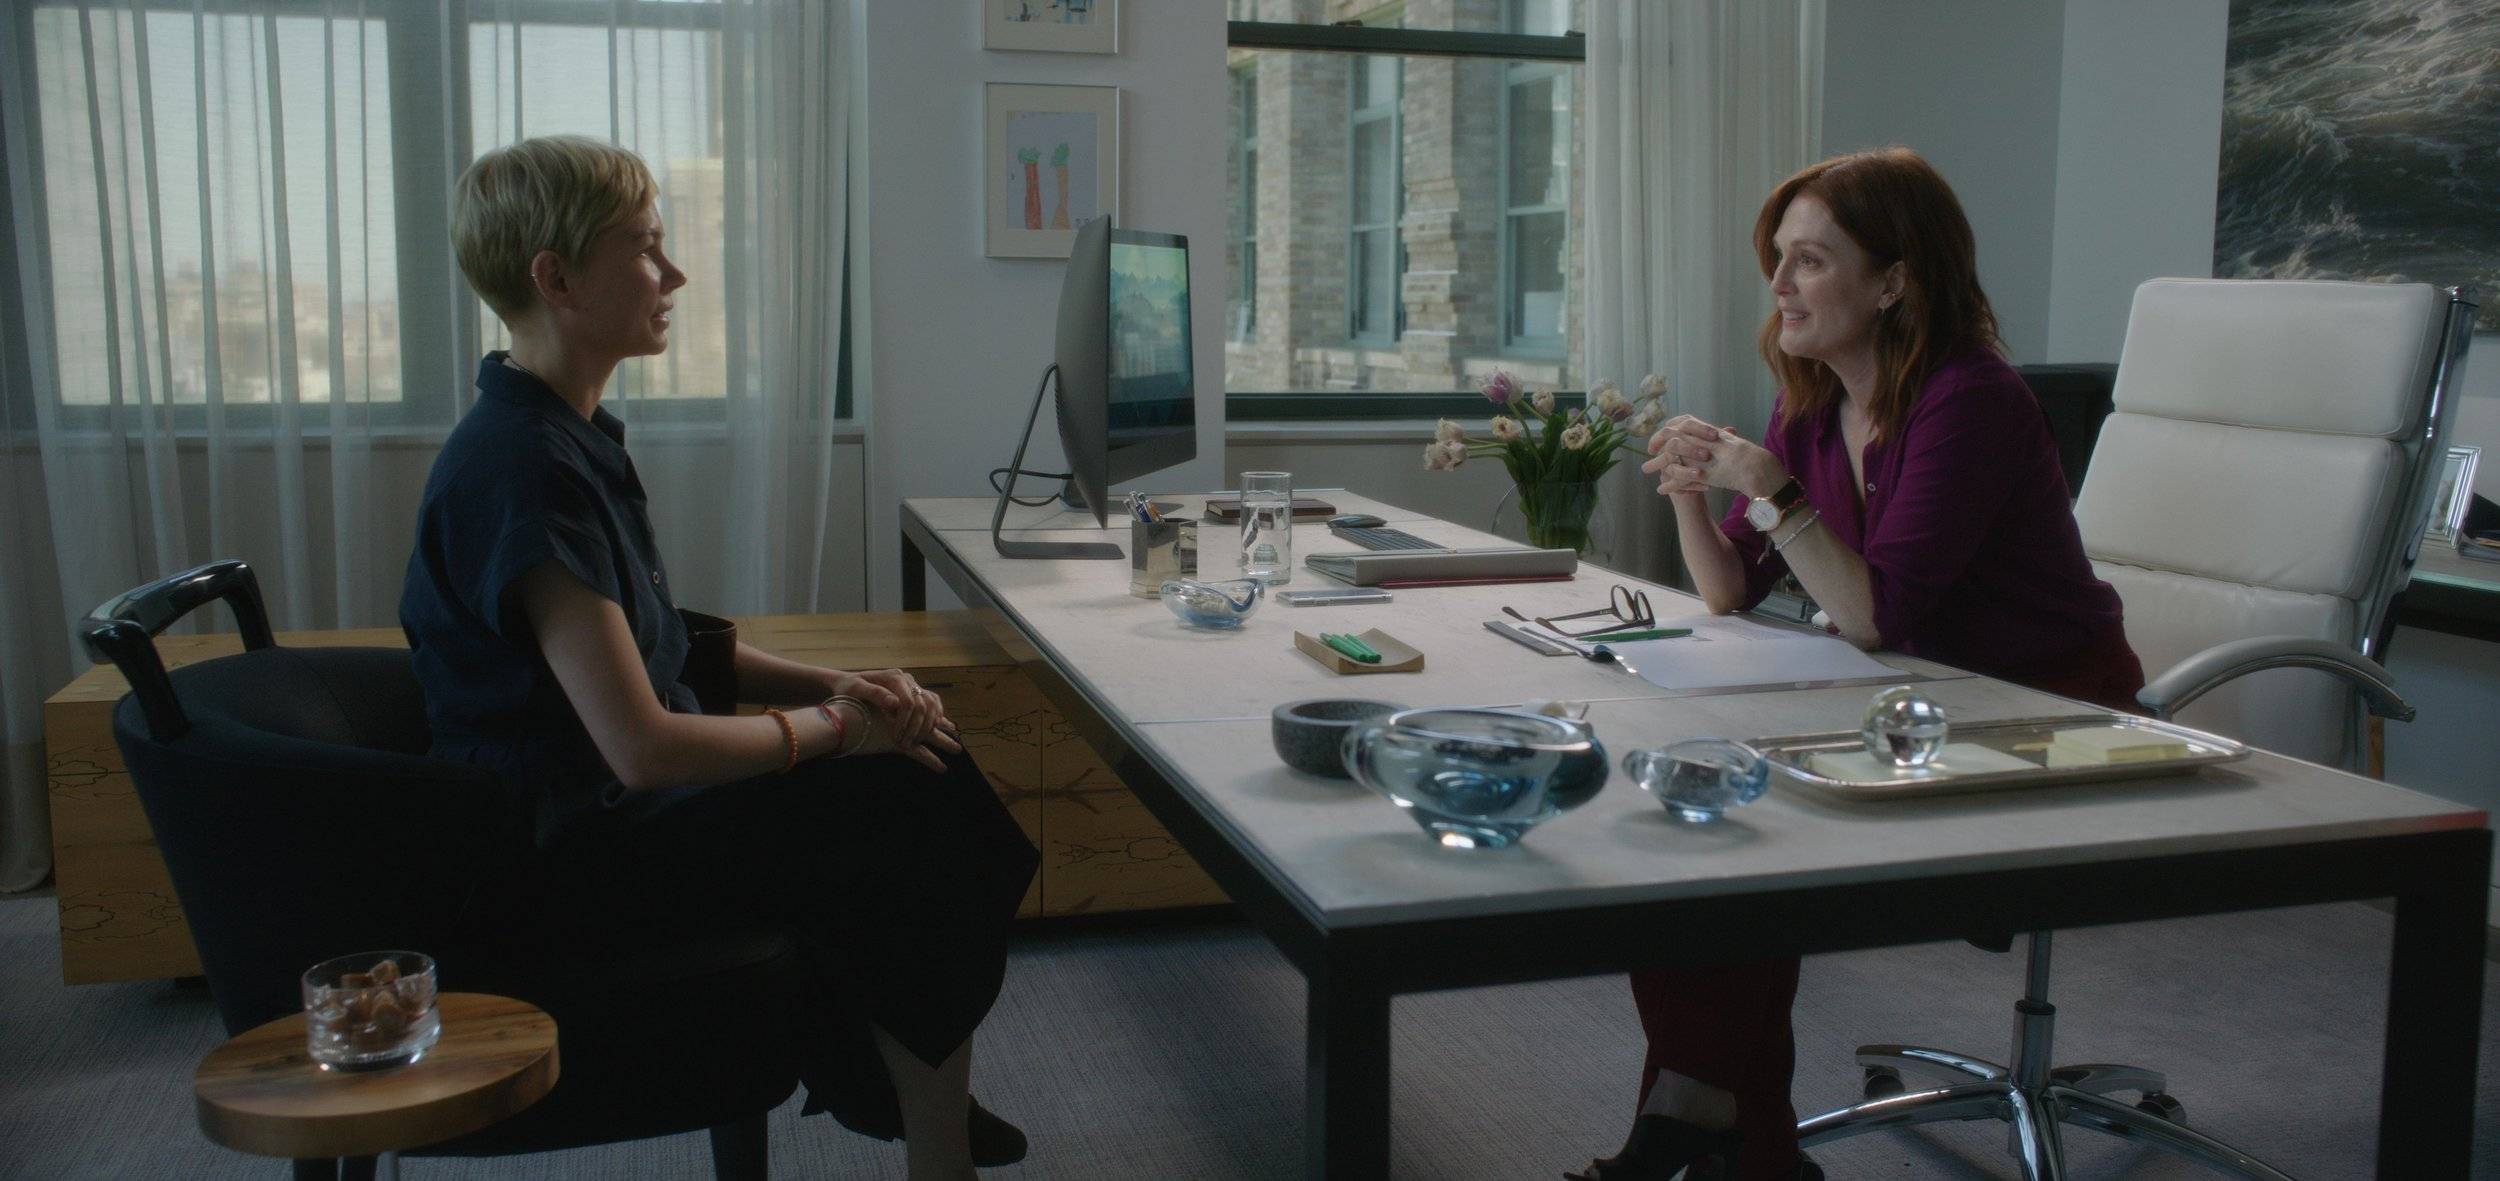 Julianne Moore is a business mogul stringing along the director of an Indian orphanage (Michelle Williams)